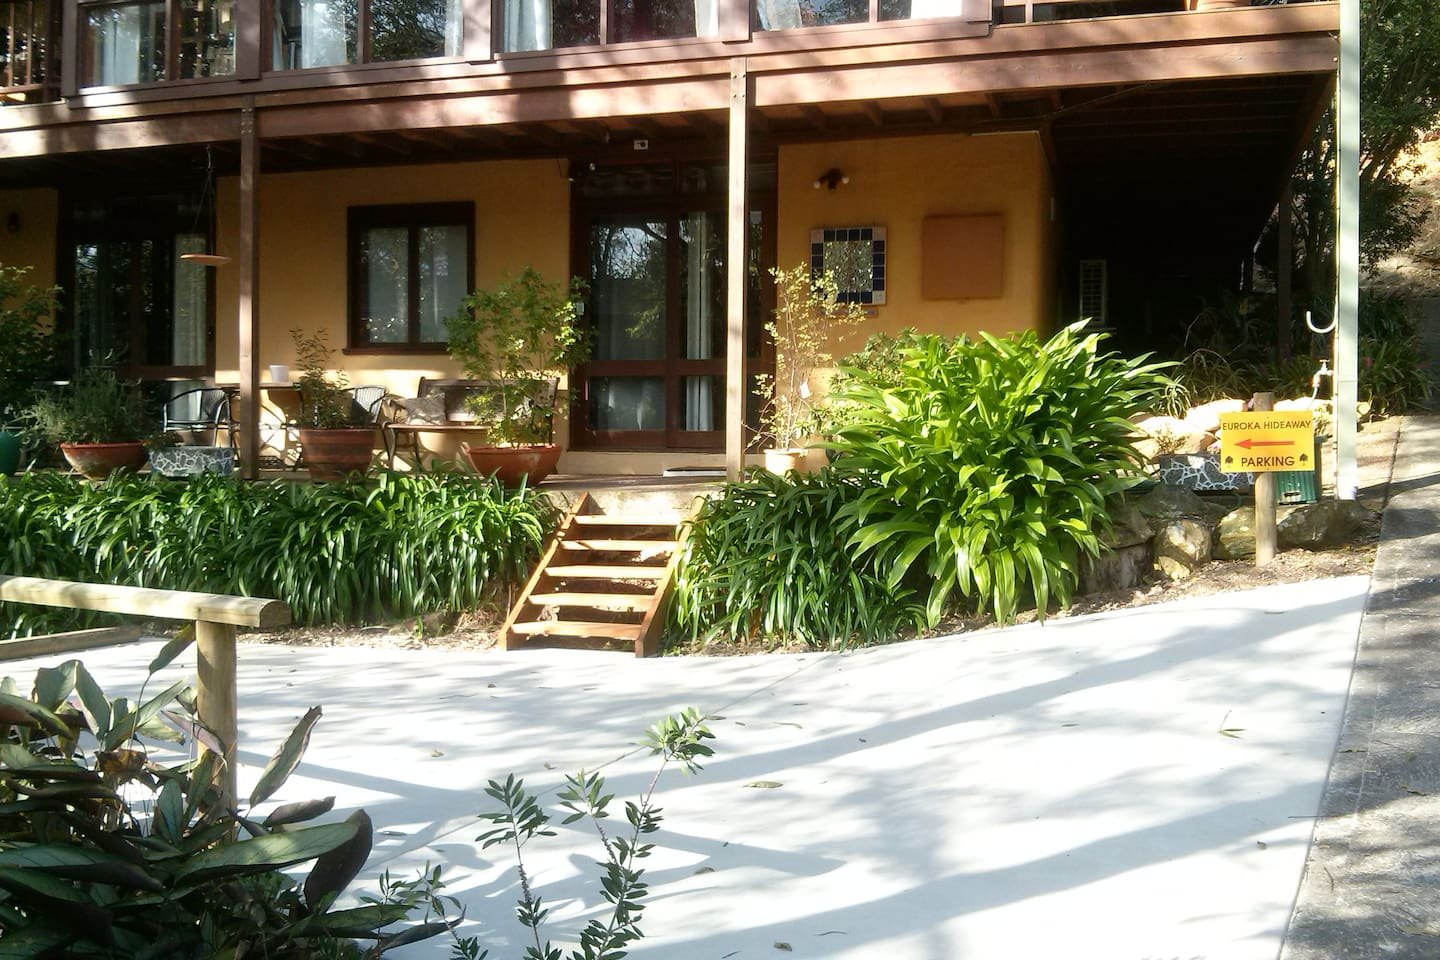 Your own parking area & view of Euroka Hideaway